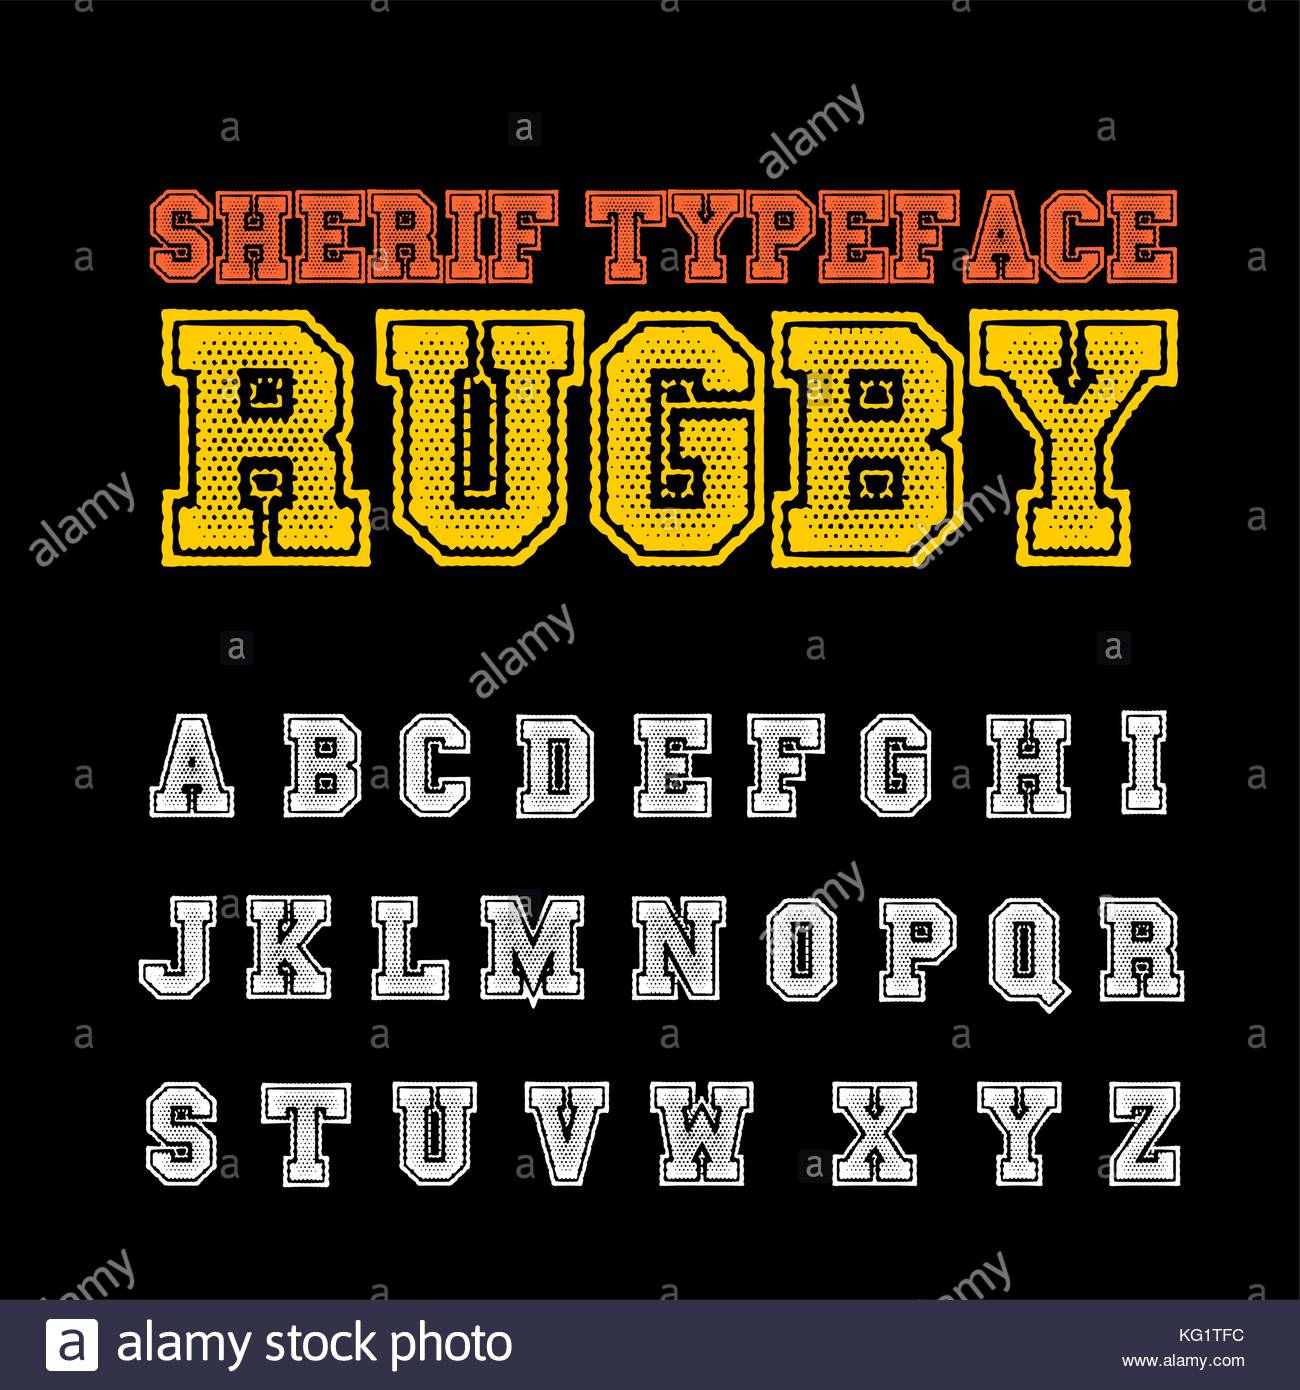 Vector Set Of Grunge Sherif Style ABC Fonts Alphabet Letter Named RUGBY